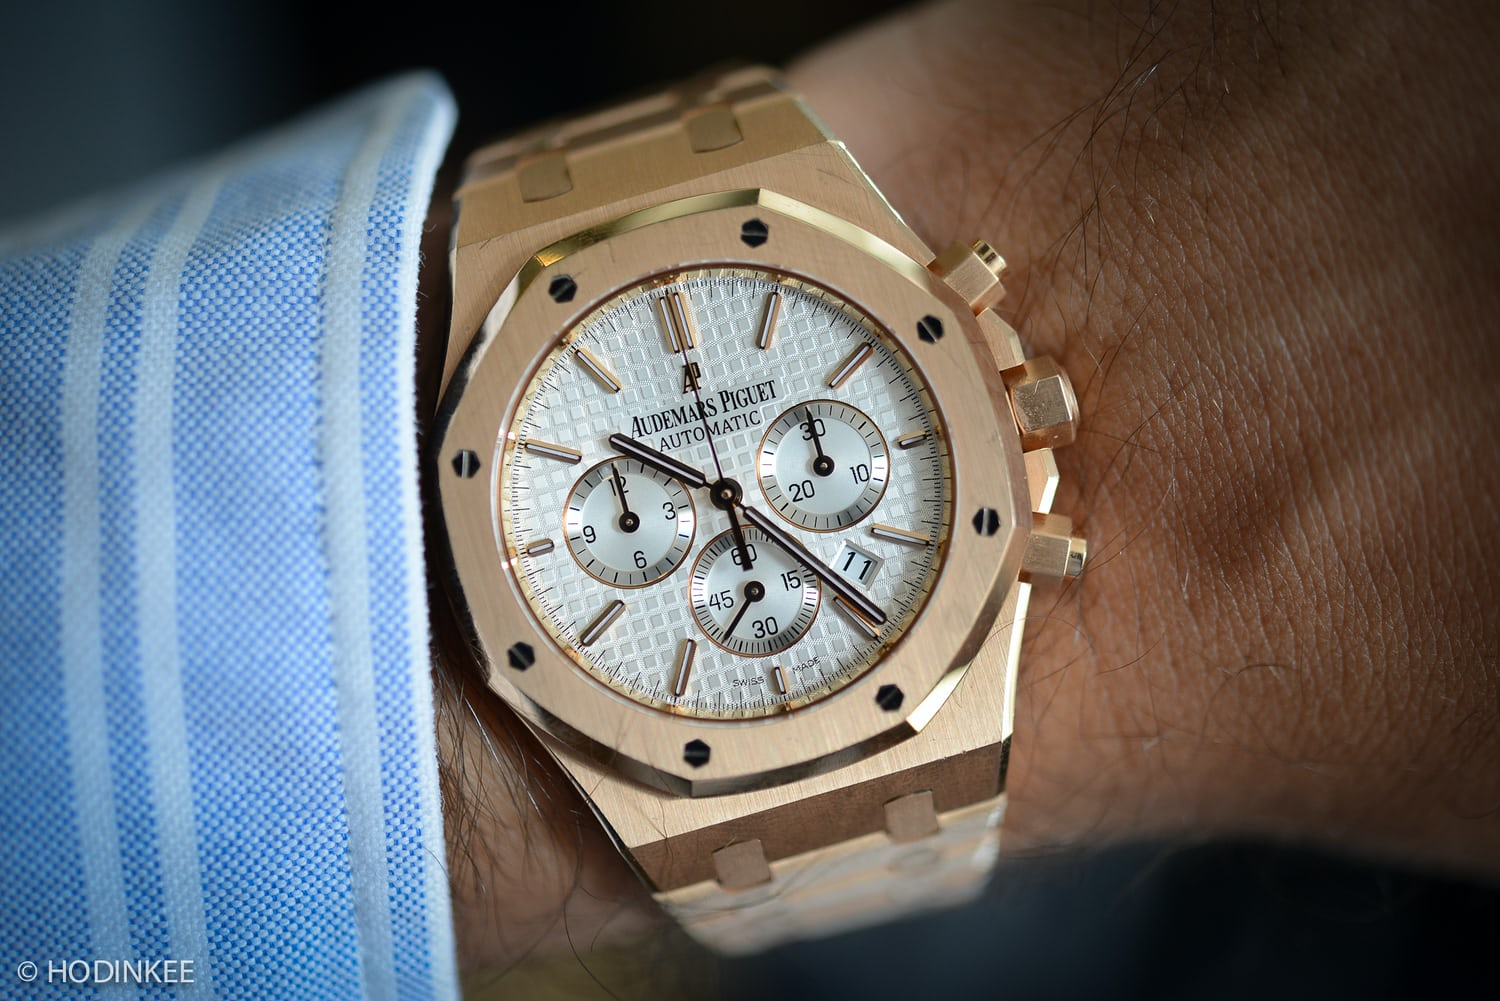 304eabfbd94e A Week On The Wrist  The Audemars Piguet Royal Oak Chronograph - HODINKEE